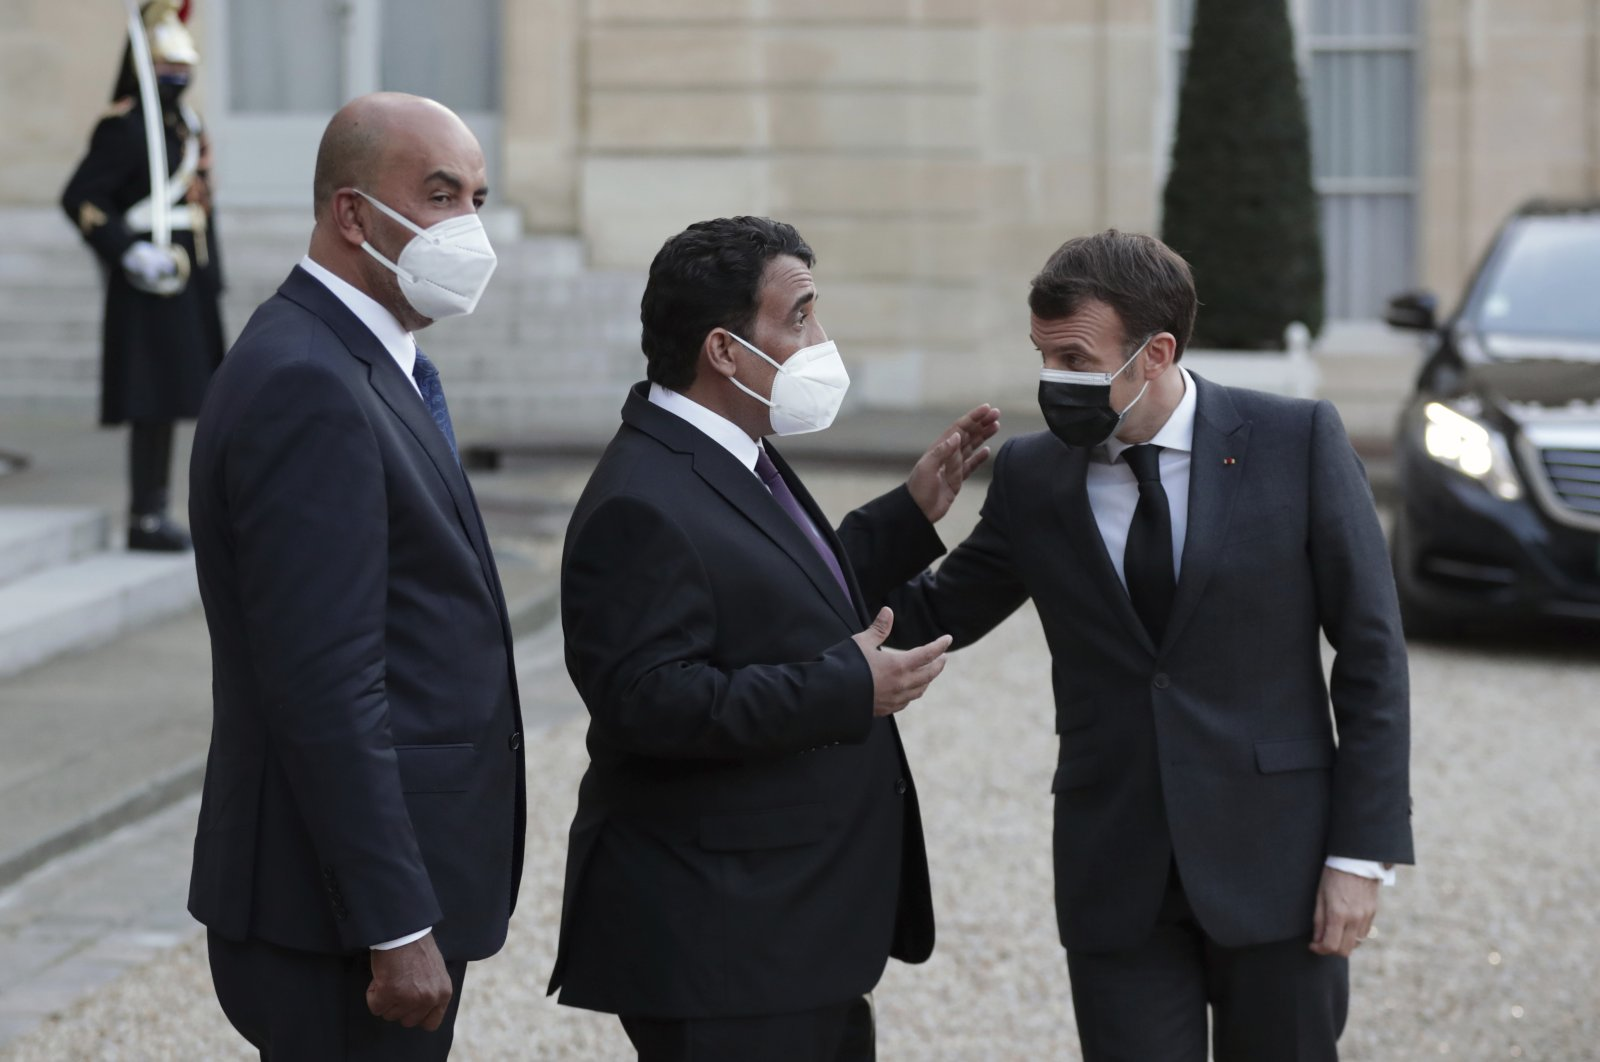 French President Emmanuel Macron (R), talks with Mohammad Younes Menfi, president of Libya's Presidential Council (C), and Musa al-Koni, vice-president of Libya's Presidential Council (L), at the end of a meeting, at the Elysee Palace, in Paris, March 23, 2021. (AP Photo)